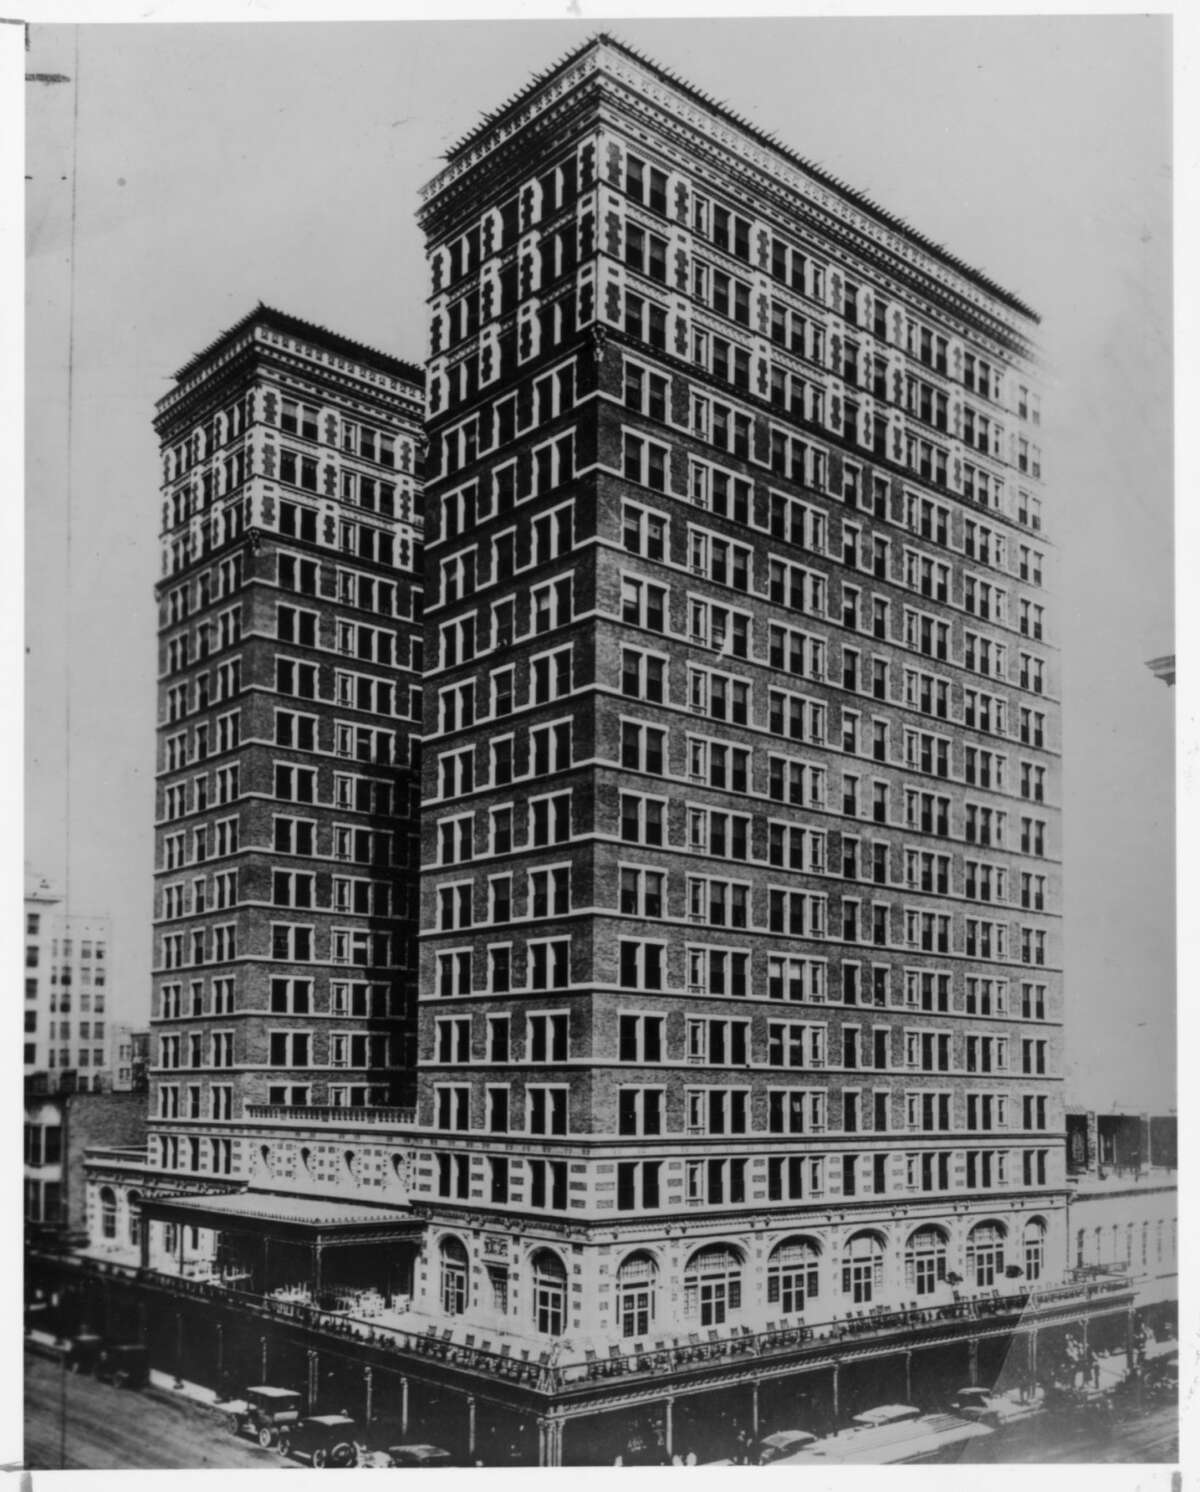 The new Rice Hotel in 1913.